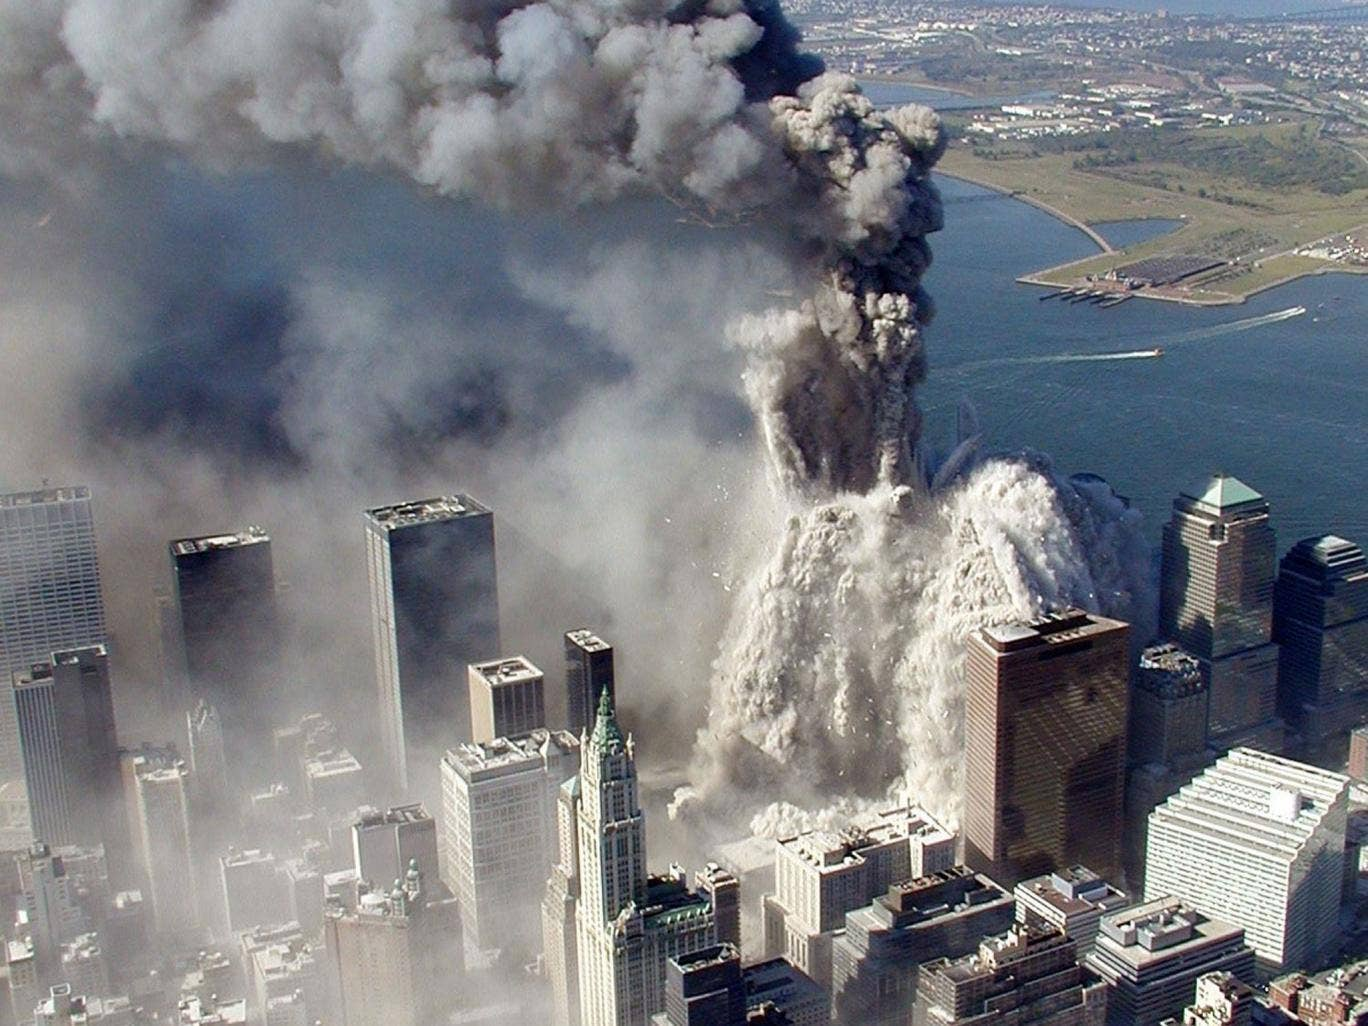 The CIA believe Abu Zubaydah was one of the planners of the 9/11 attacks on the World Trade Centre in New York and virtually every major attack by al-Qa'ida before that, including the 1998 US embassy bombings in East Africa